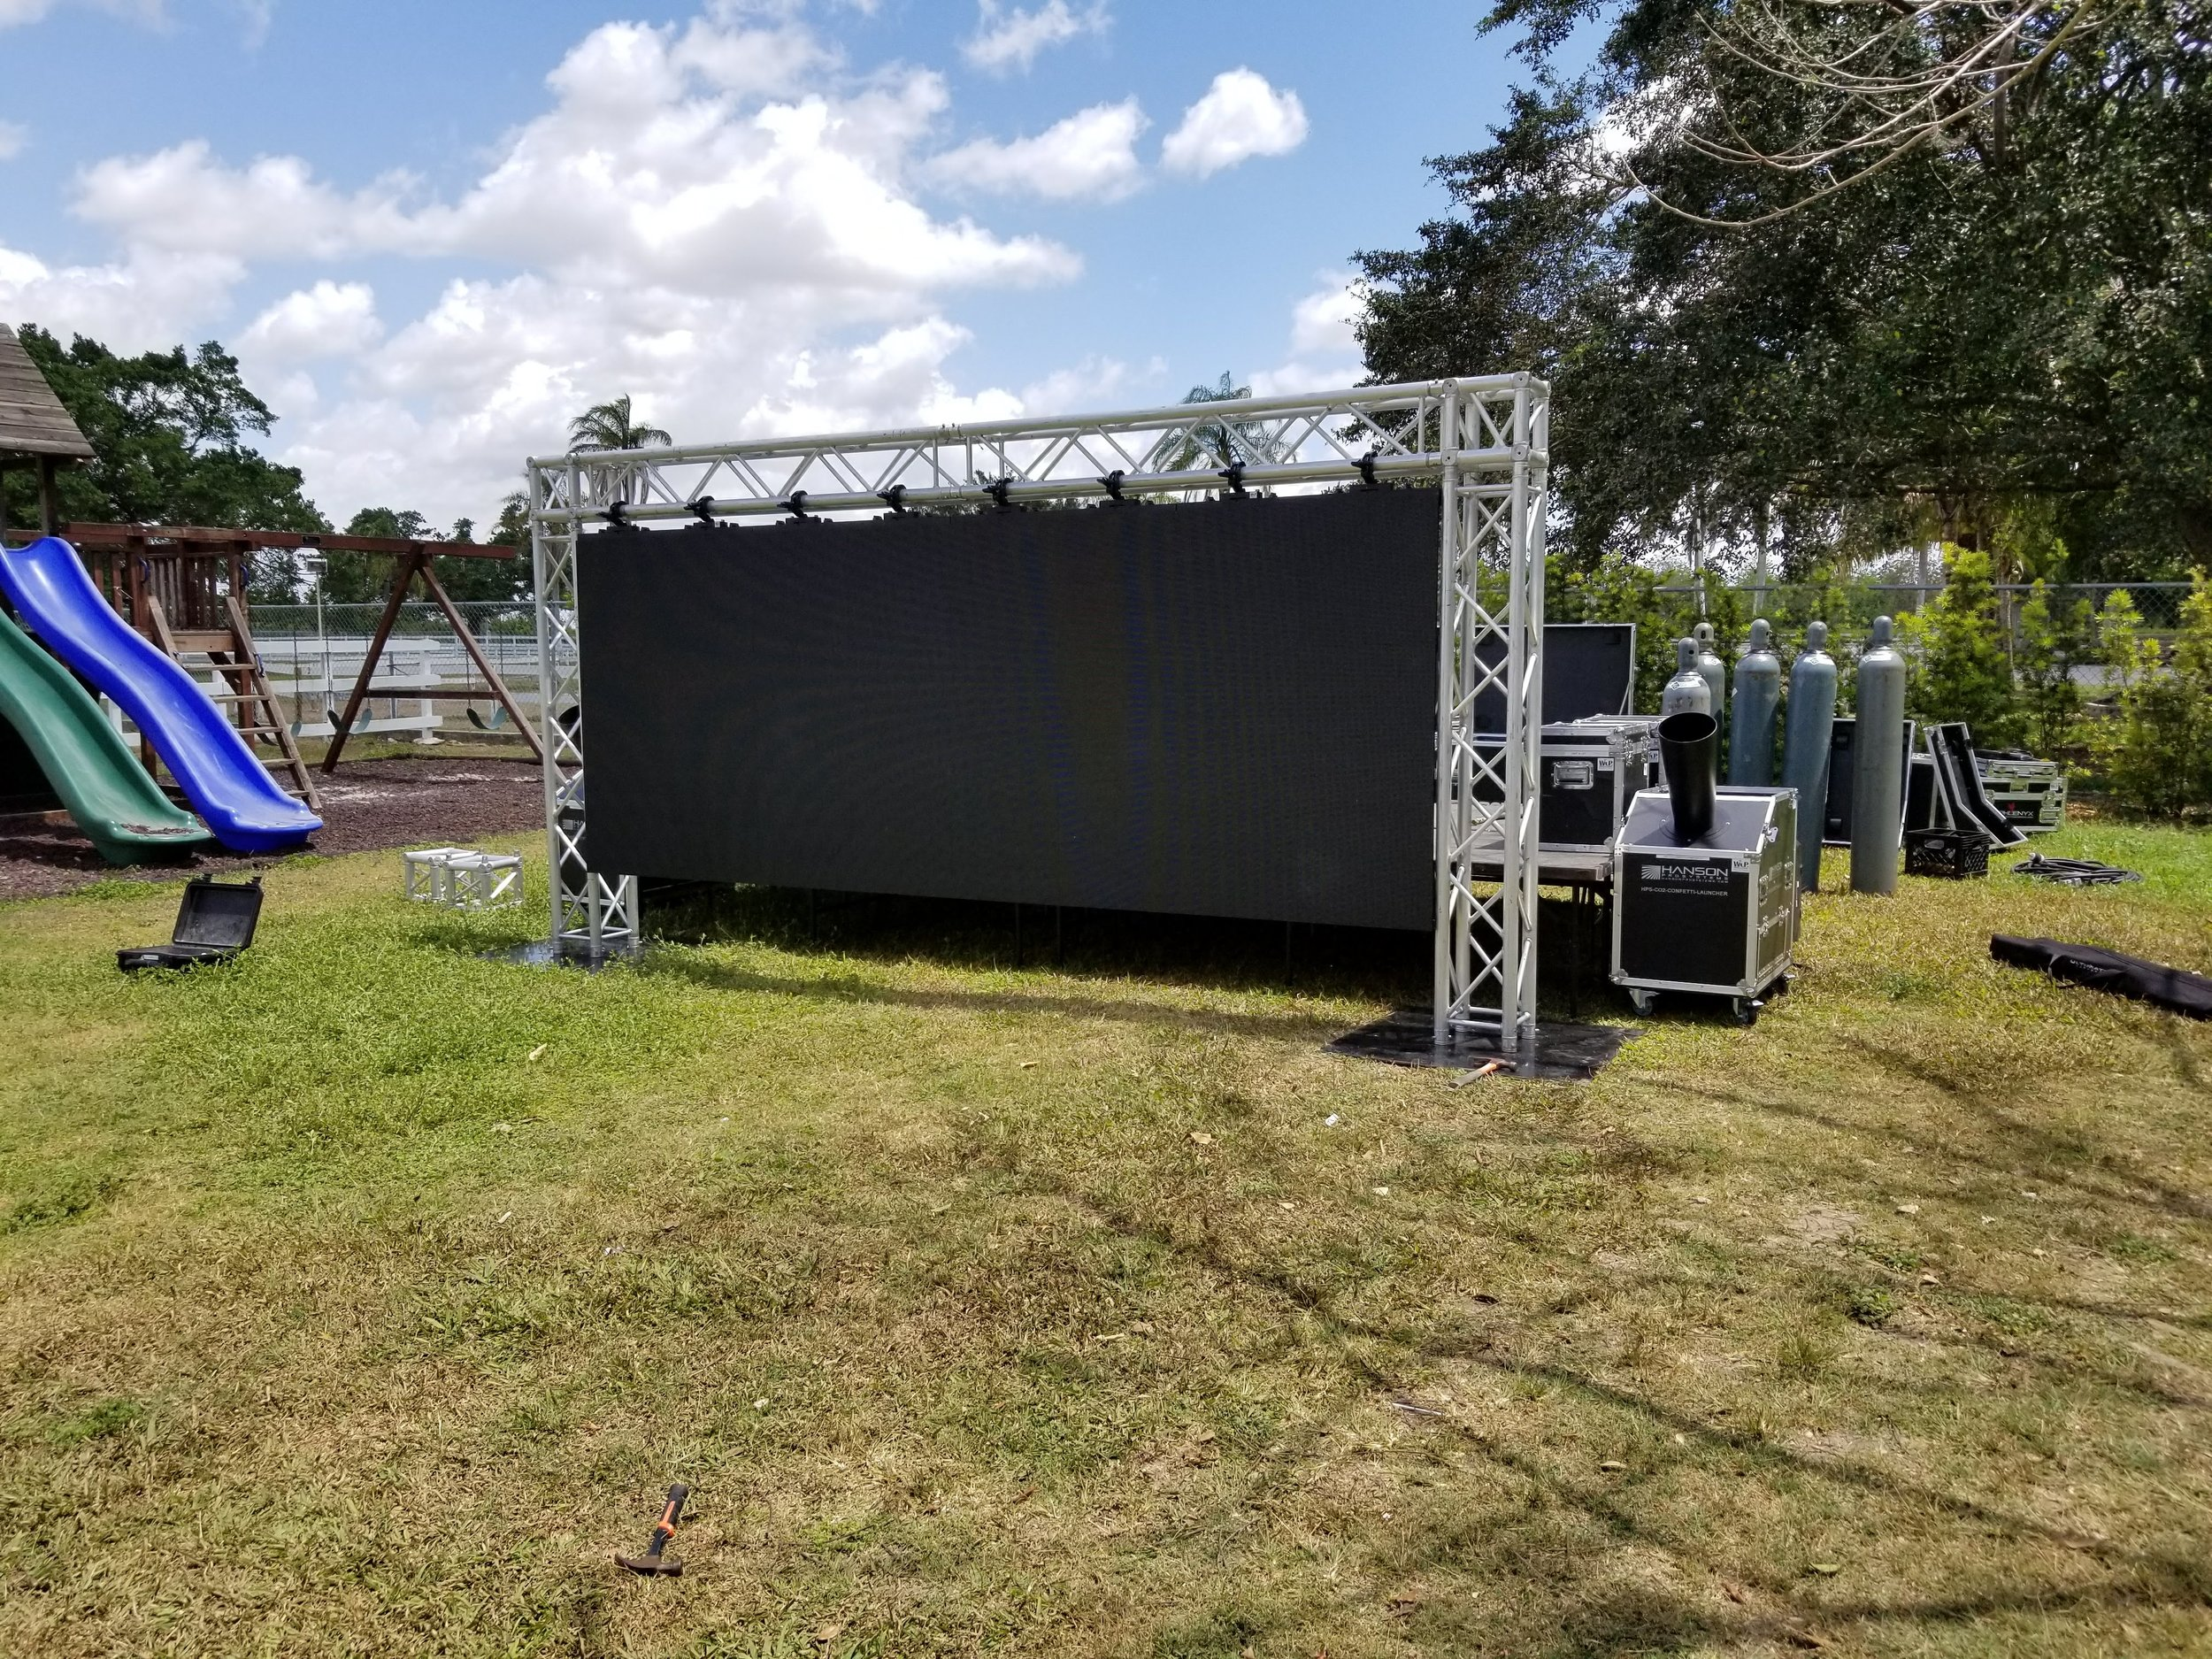 LED Video Wall Outdoor Events